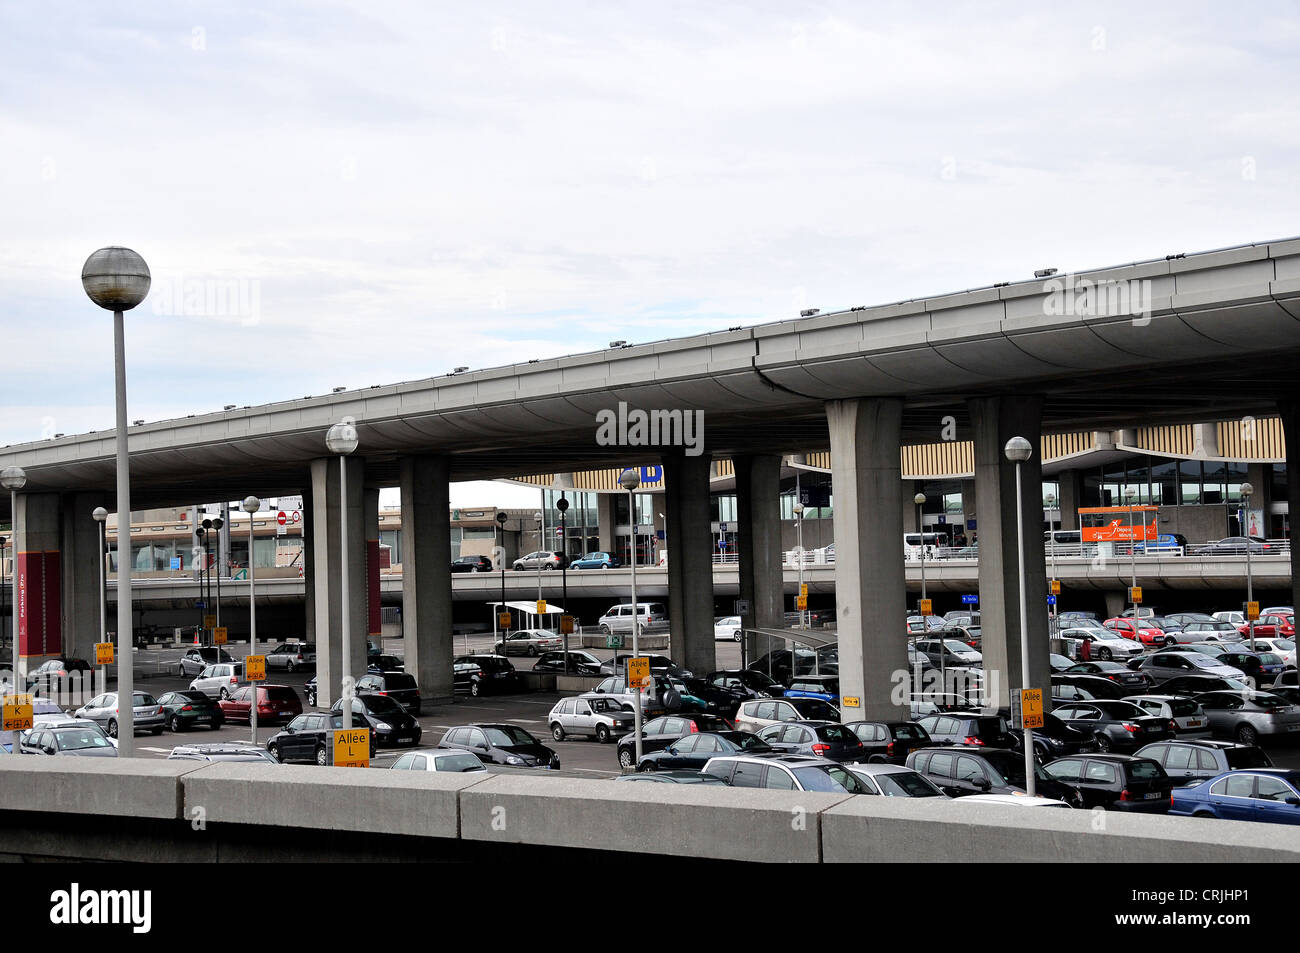 cars parking roissy charles de gaulle airport terminal 2 paris france stock photo 48966905 alamy. Black Bedroom Furniture Sets. Home Design Ideas